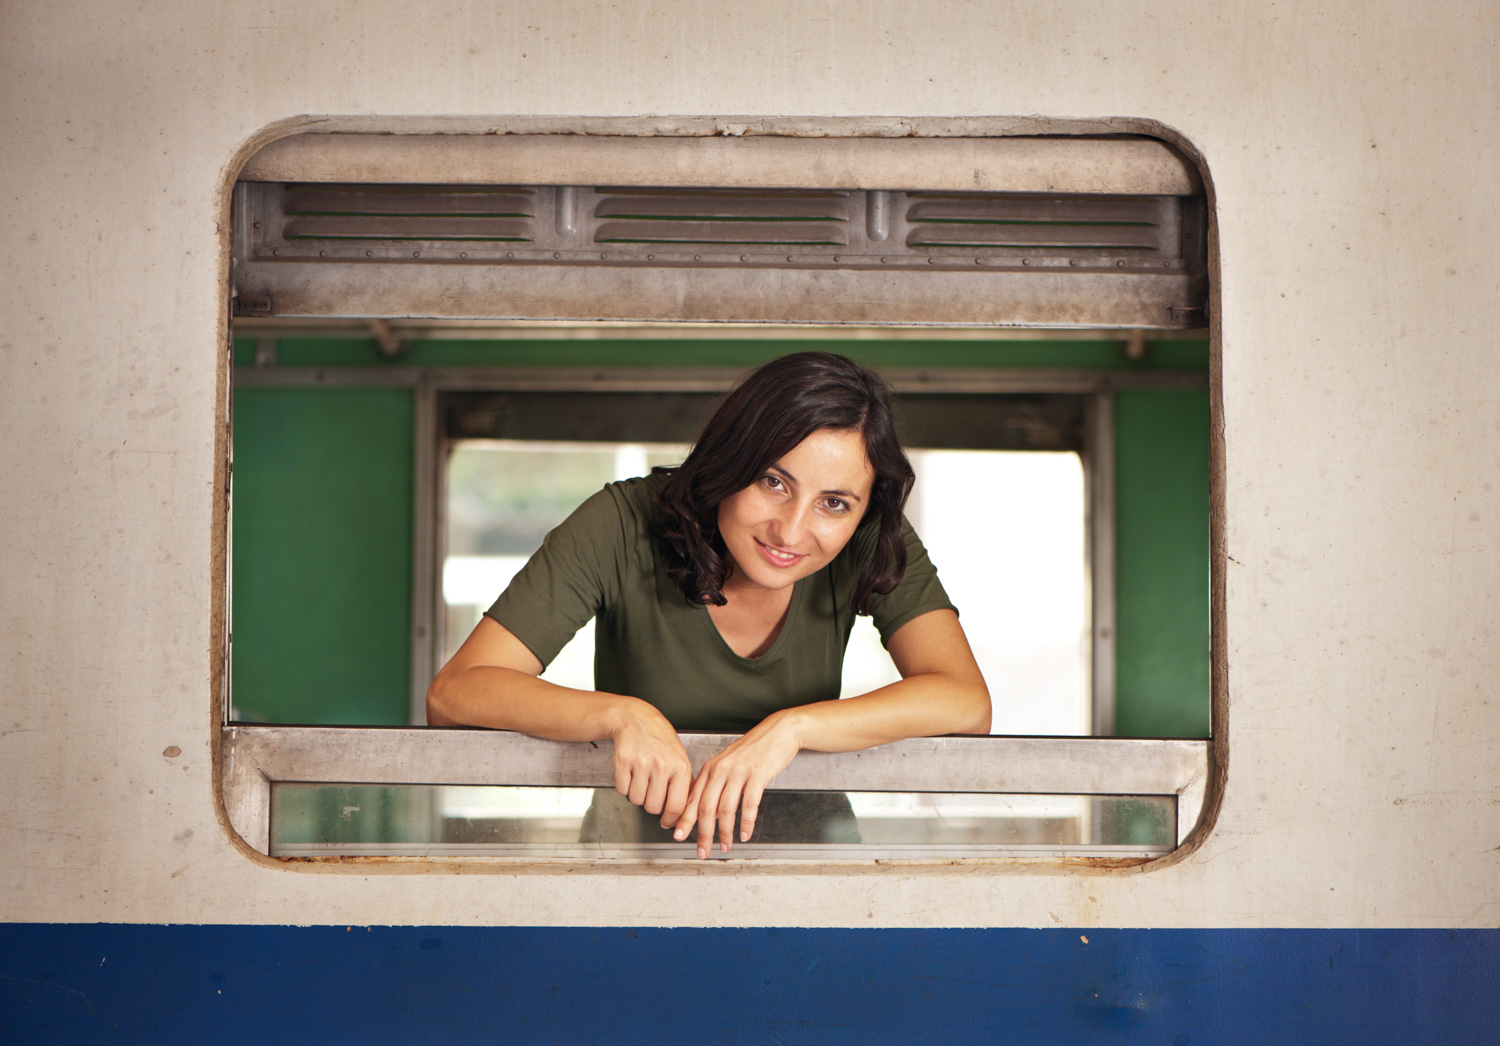 woman leaning on a window frame in a train for frame within a frame photography